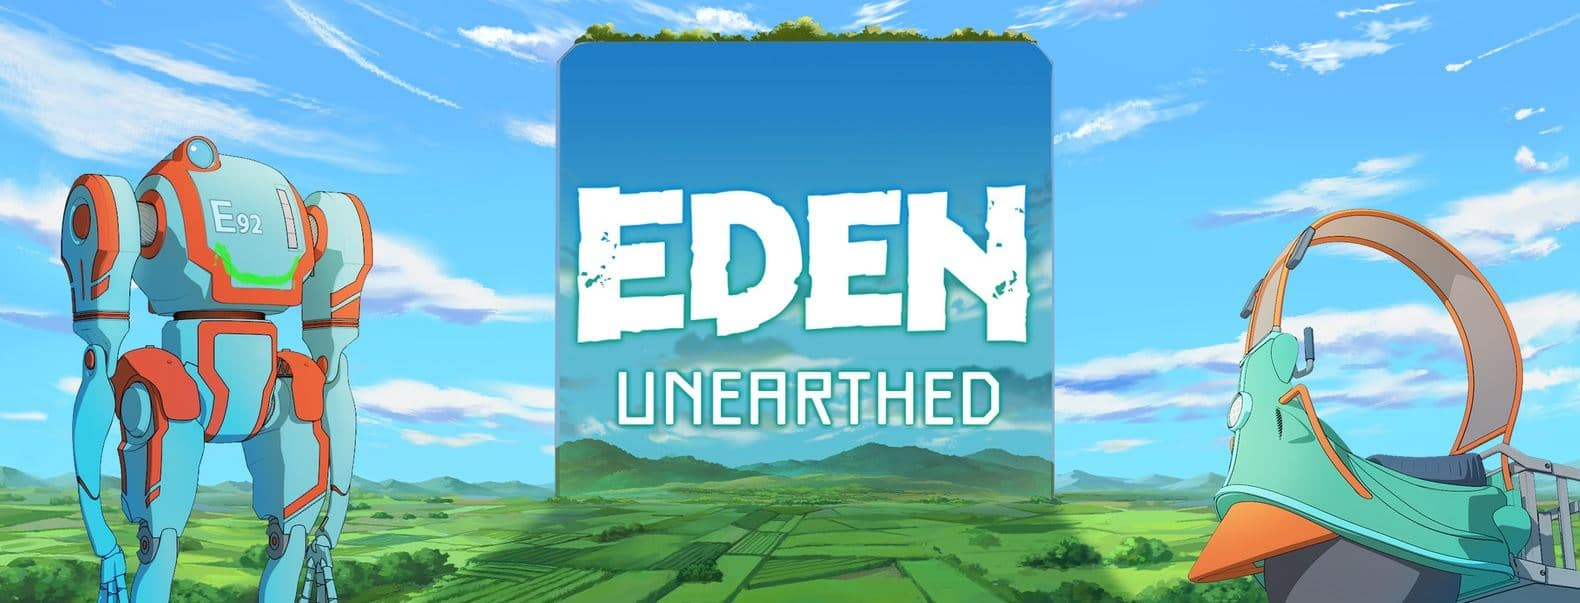 Netflix Releases Eden Unearthed On App Lab For Oculus Quest